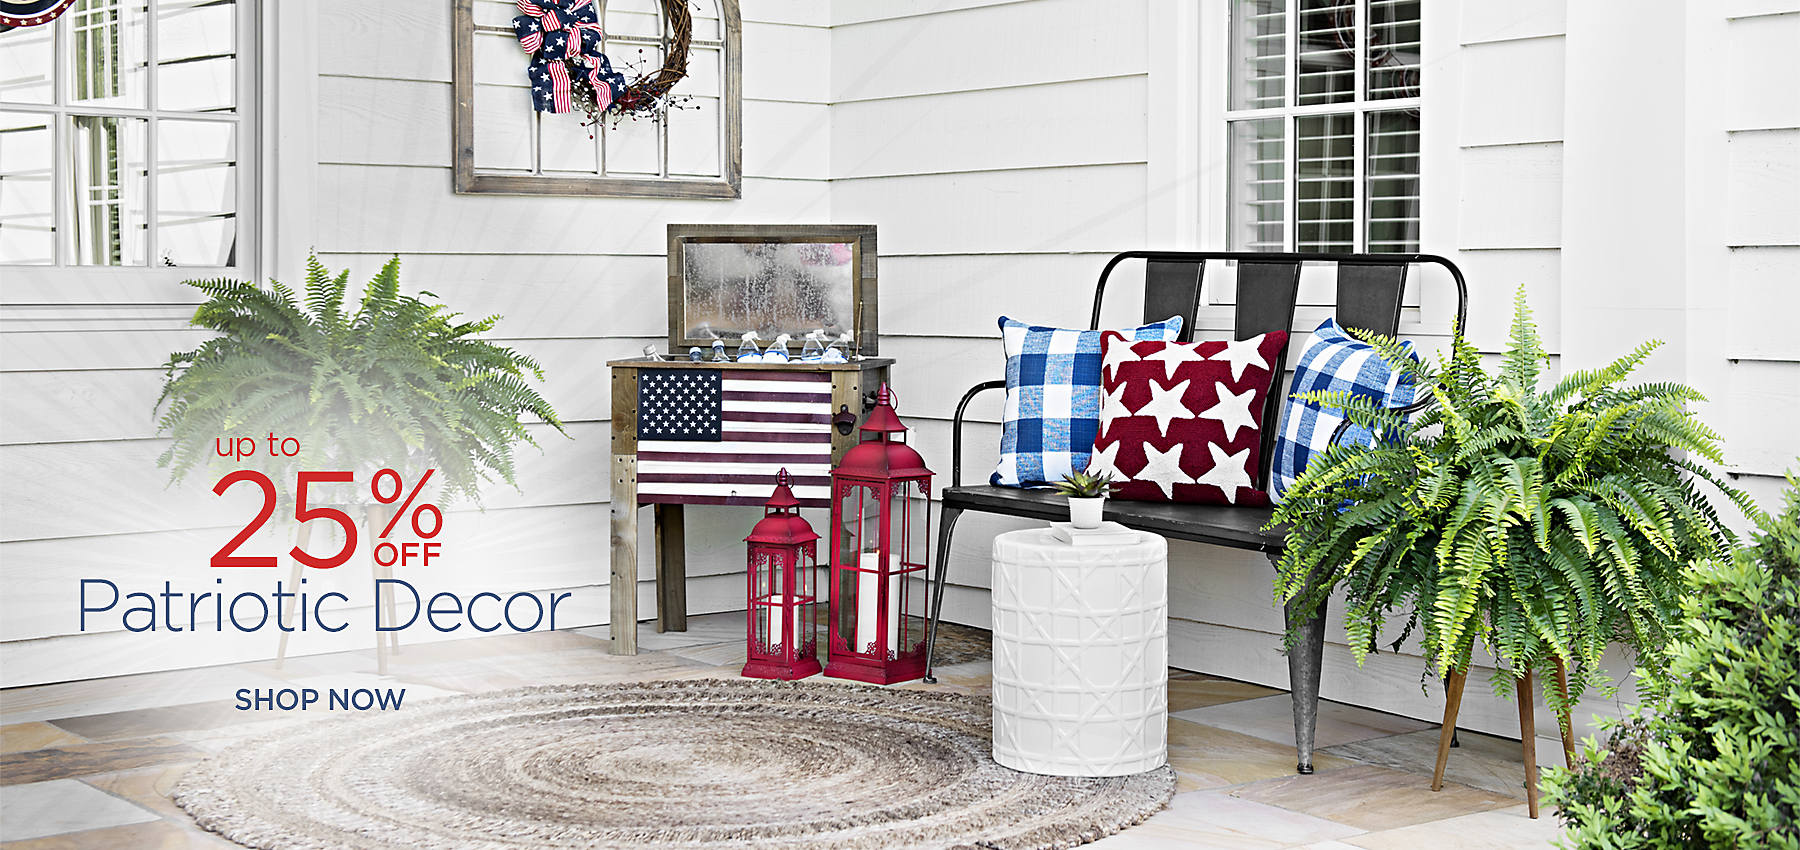 Up to 255 off Patriotic Decor - Shop Now